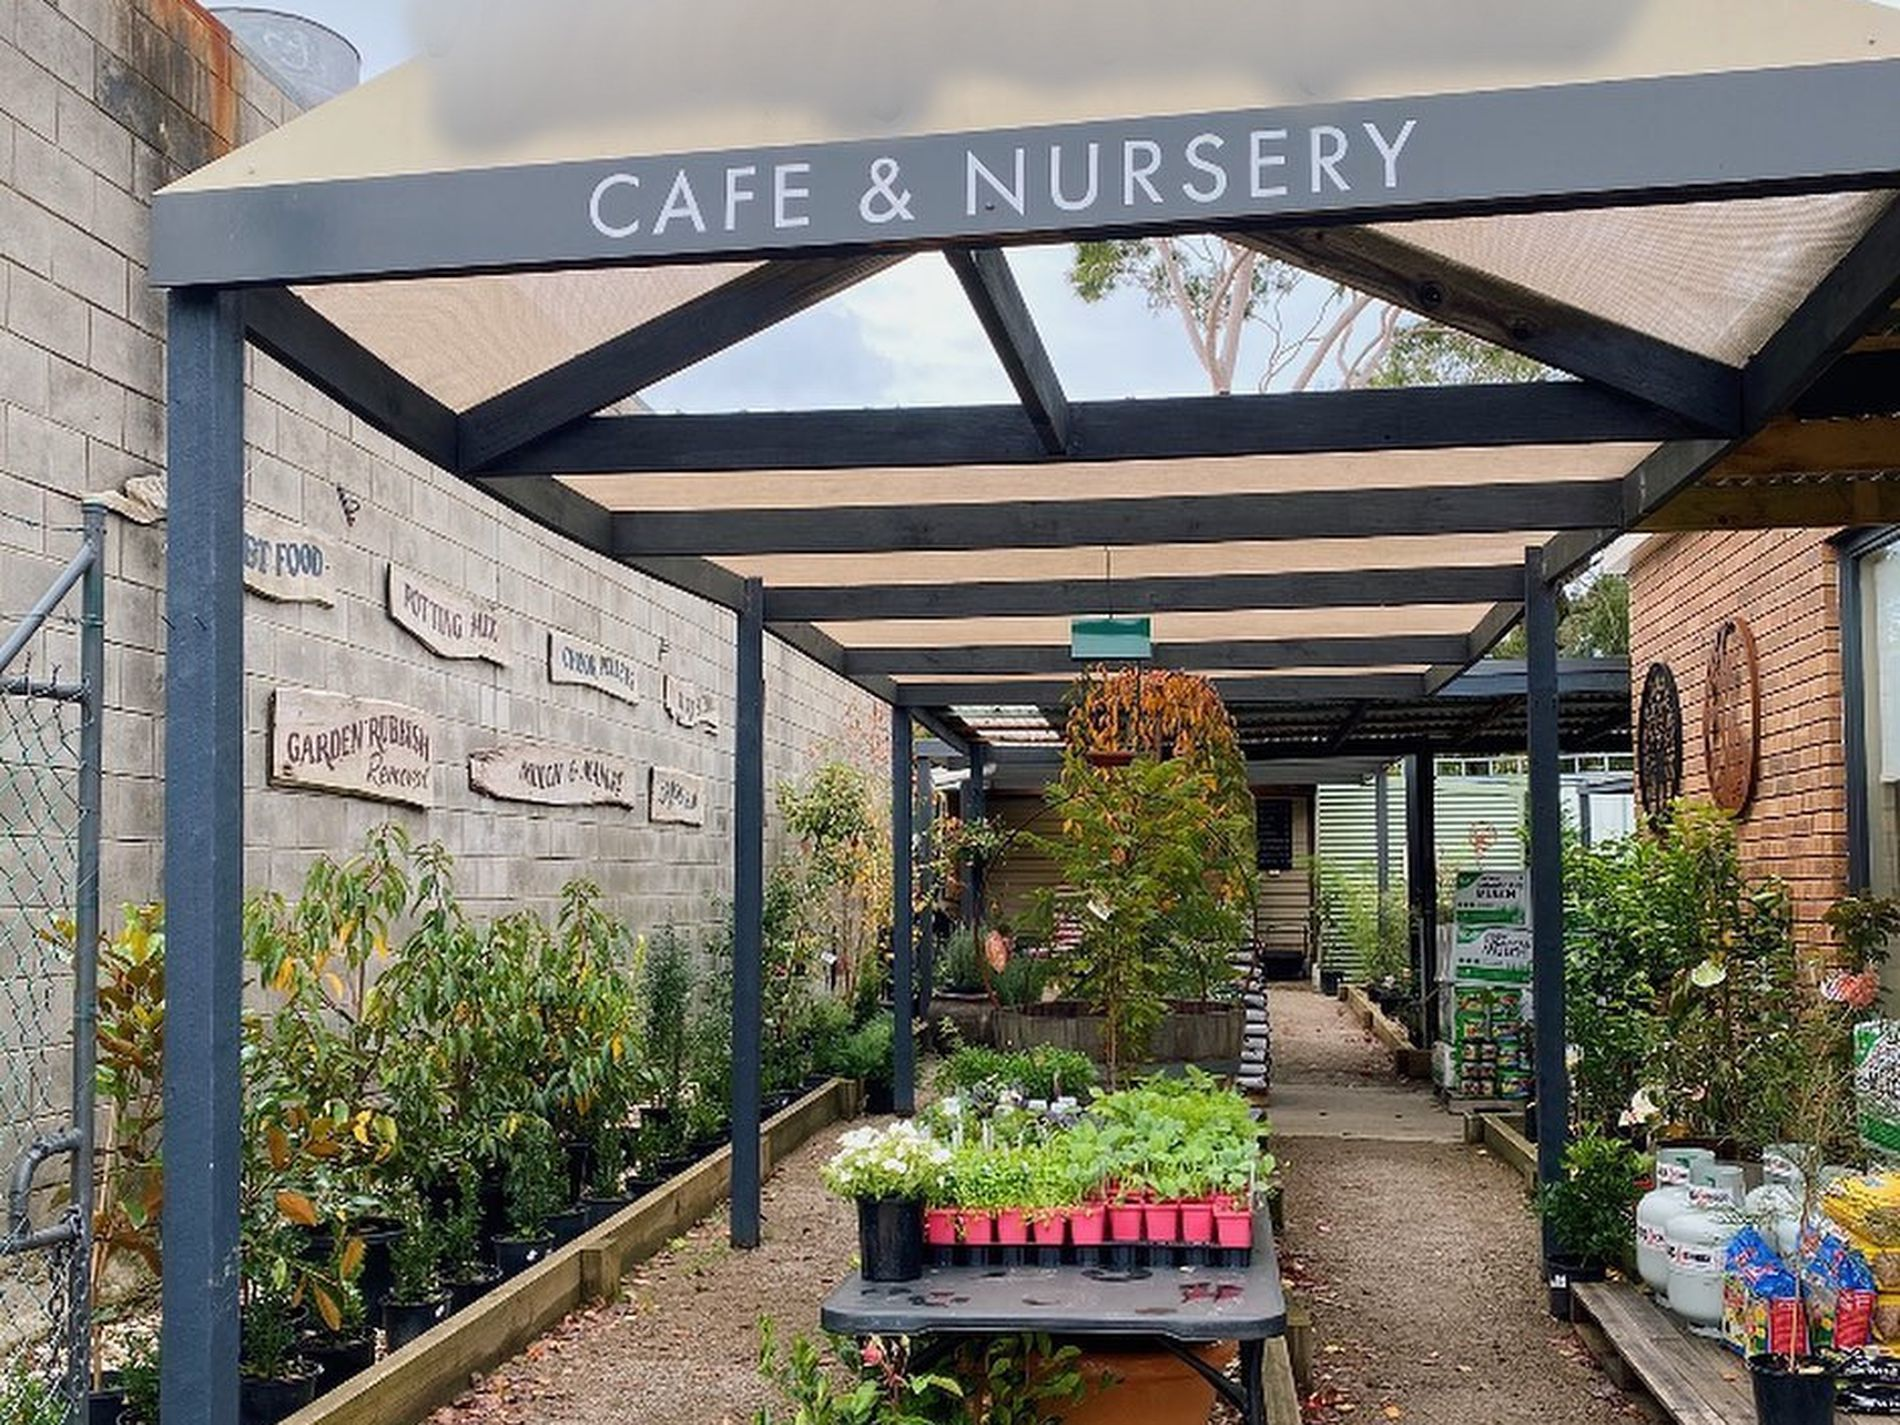 Cafe and Nursery Business for Sale Rosebud South